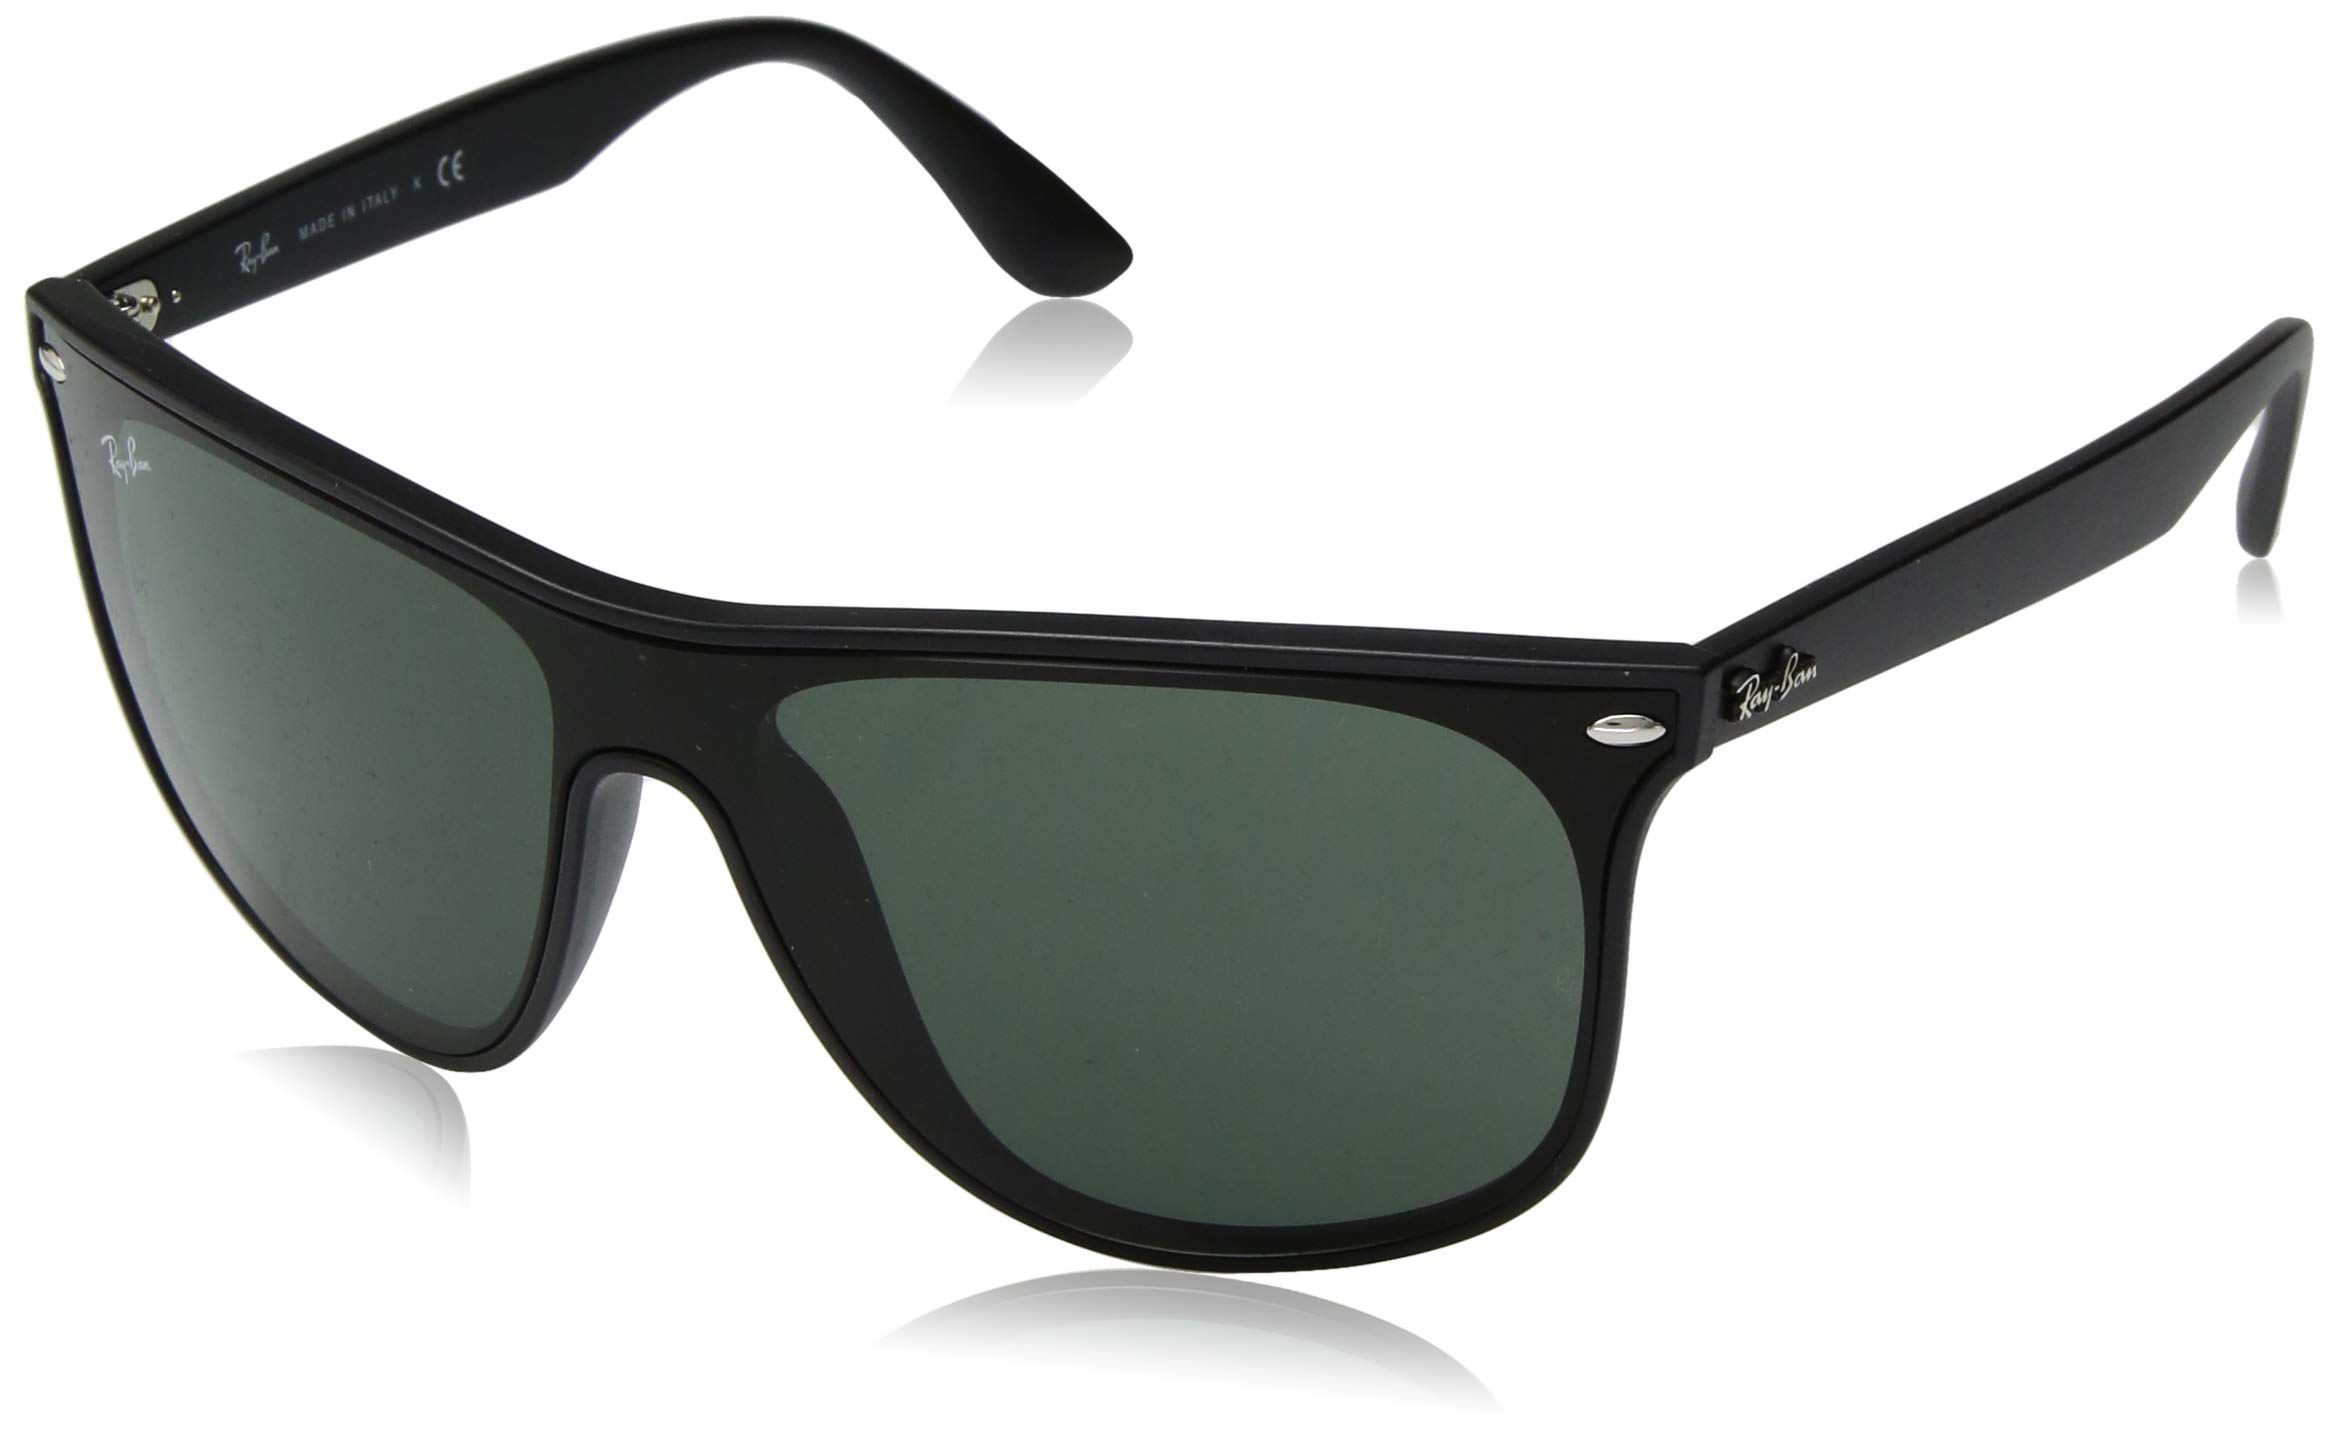 RAY-BAN RB4447N Blaze Square Sunglasses, Matte Black/Green, 40 mm by RAY-BAN